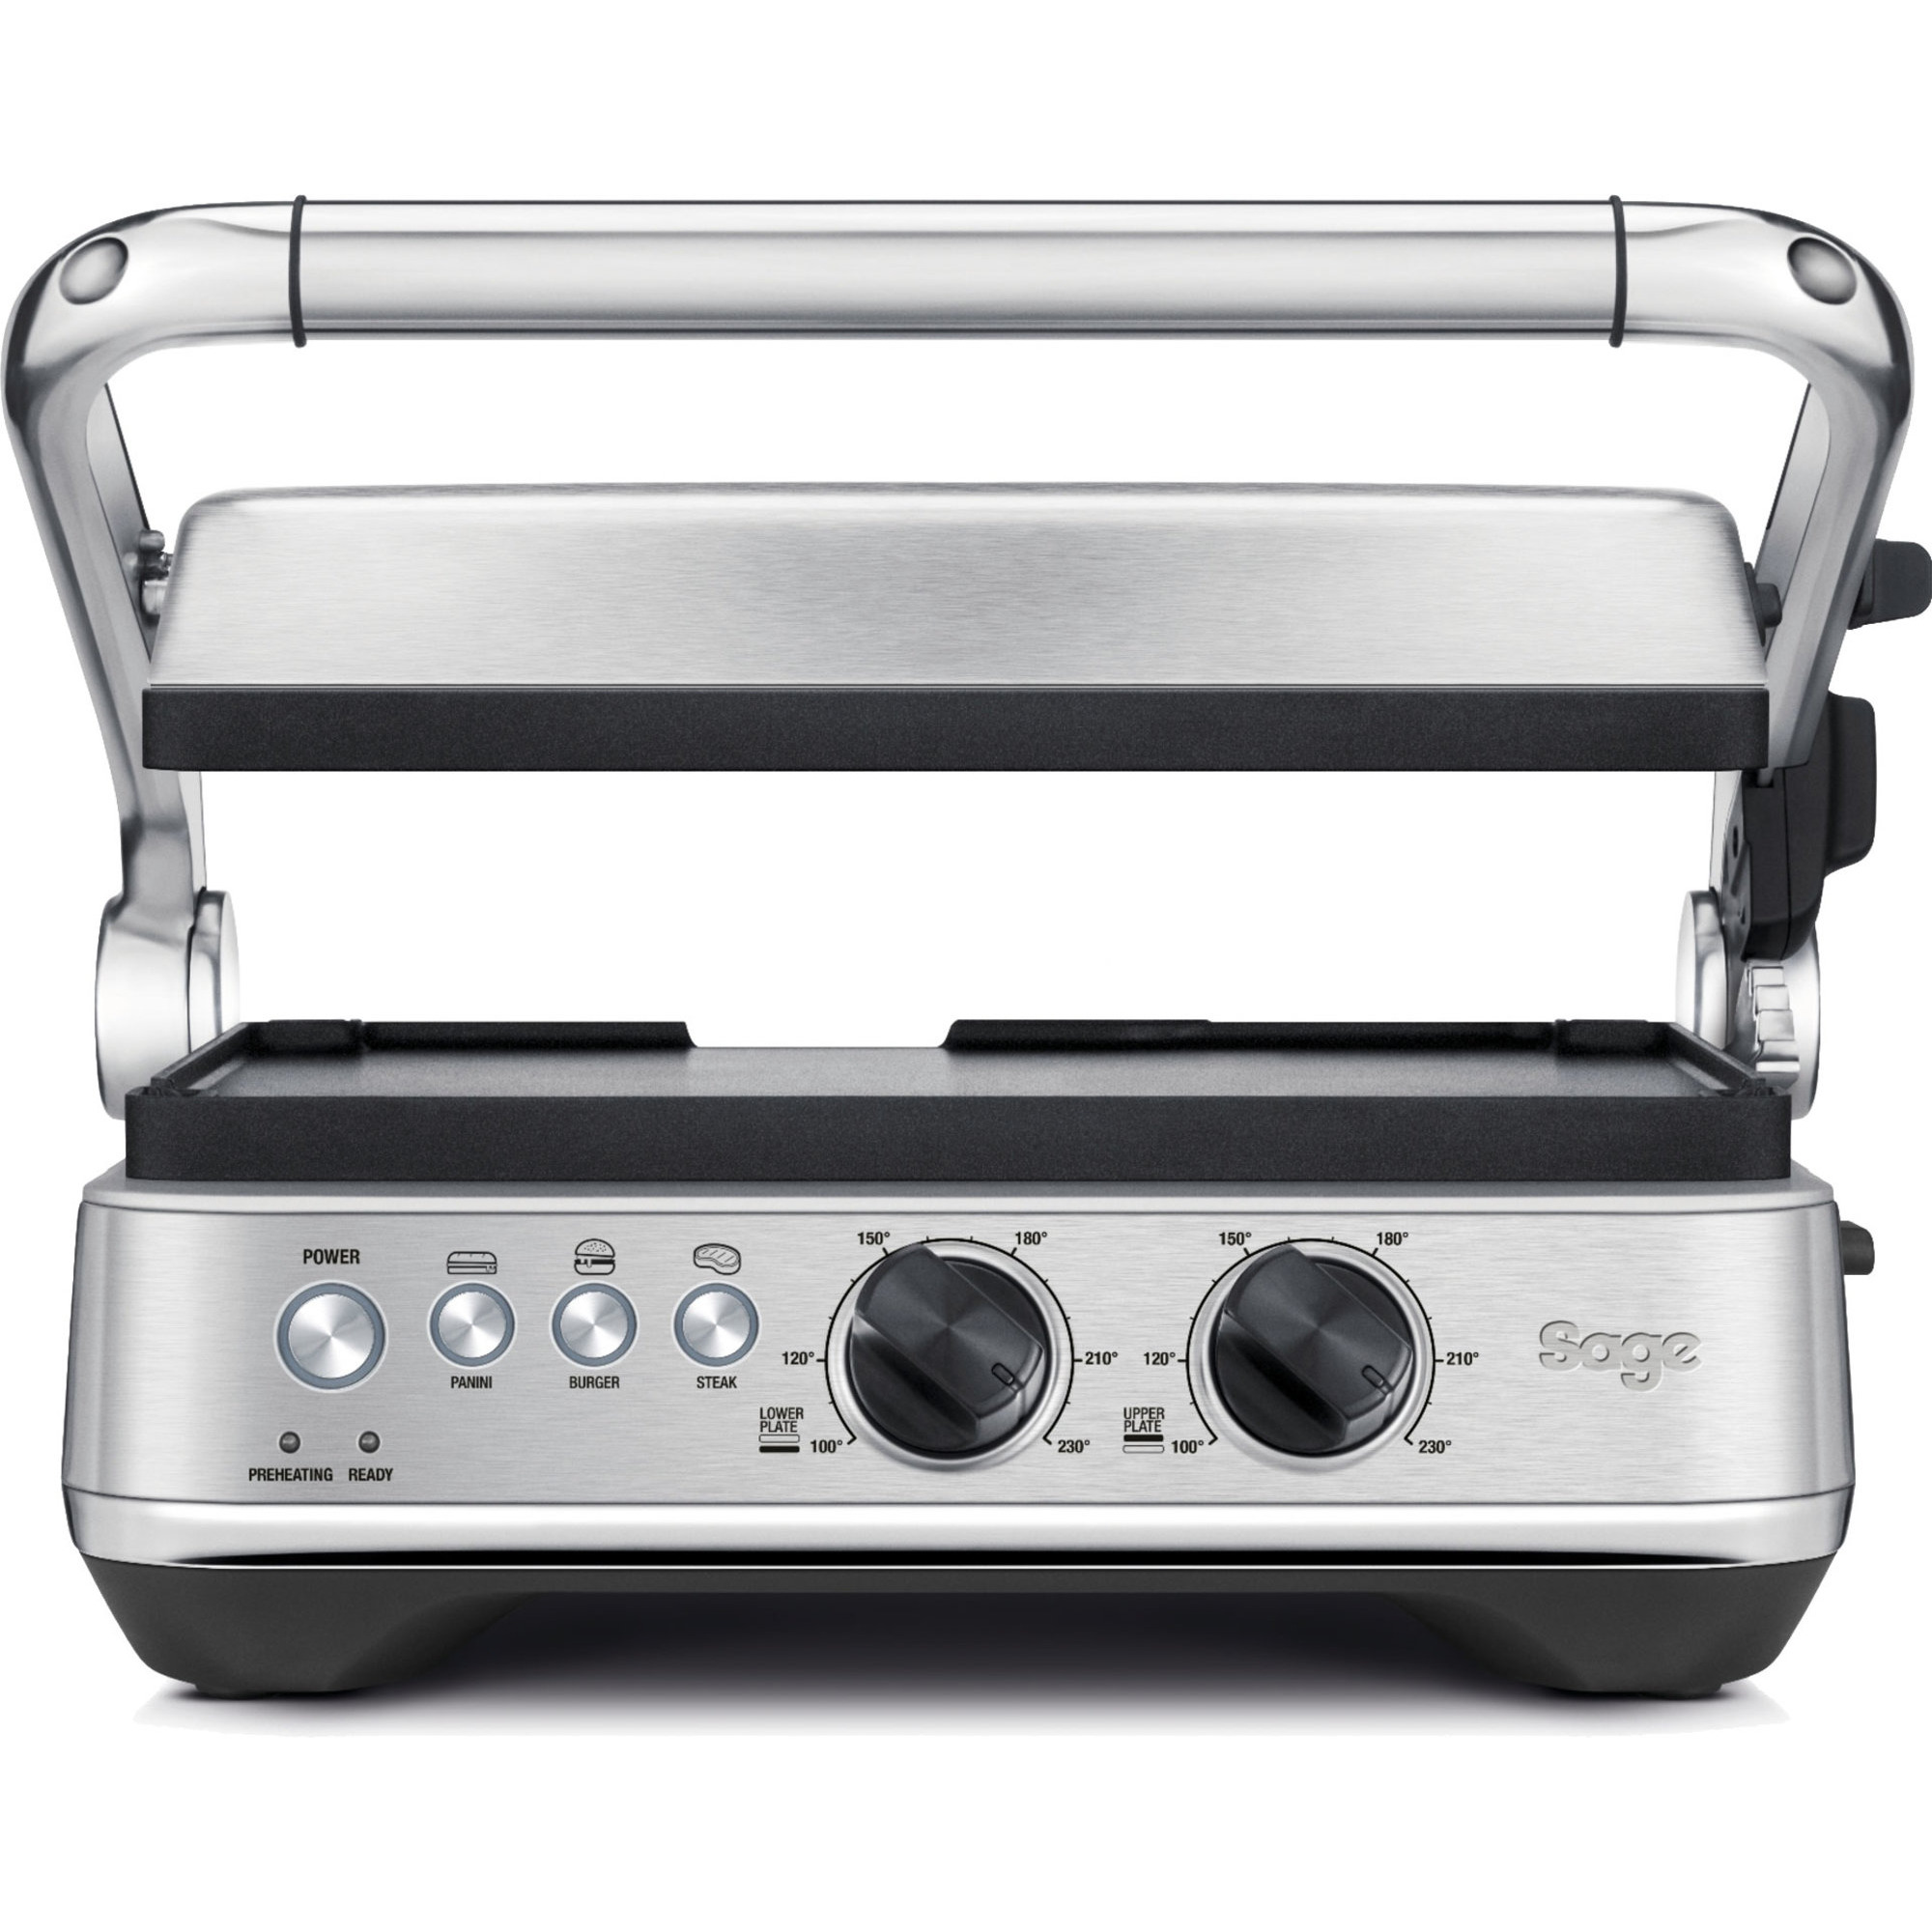 Sage SGR700 The BBQ & Press Grill